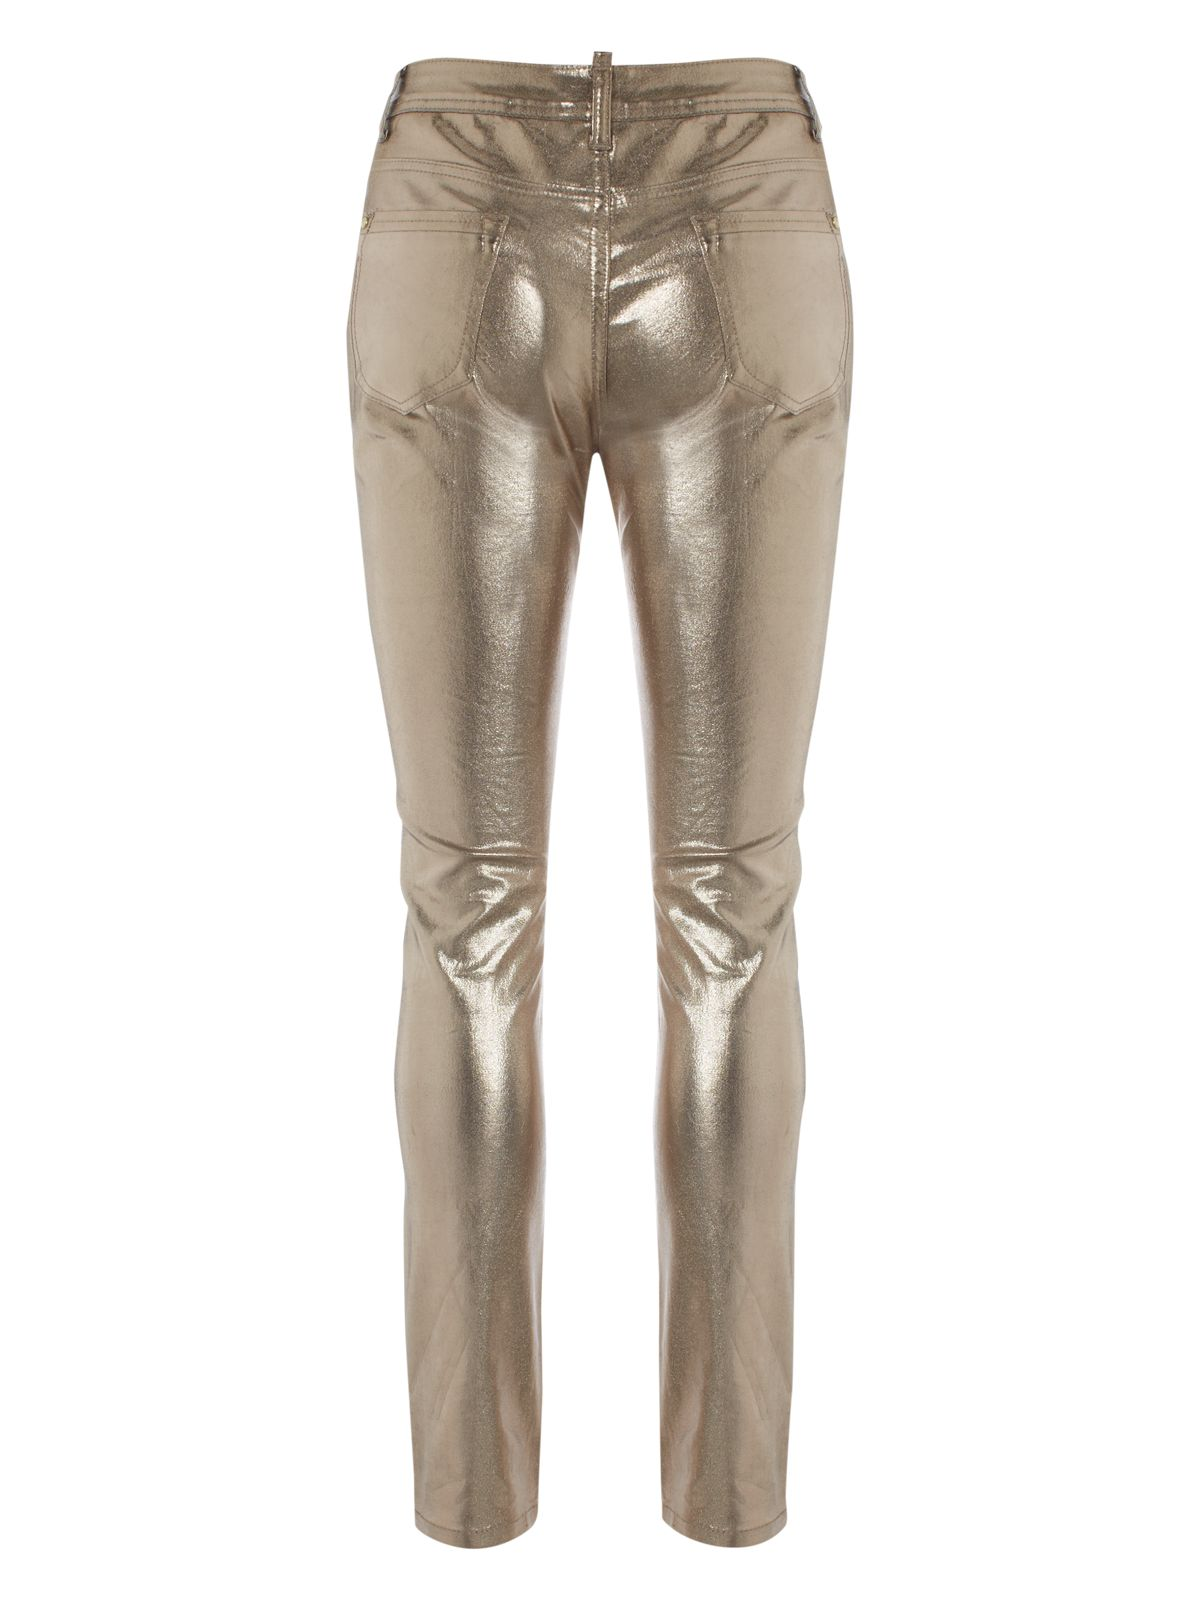 Jane Norman Metallic Skinny Jeans